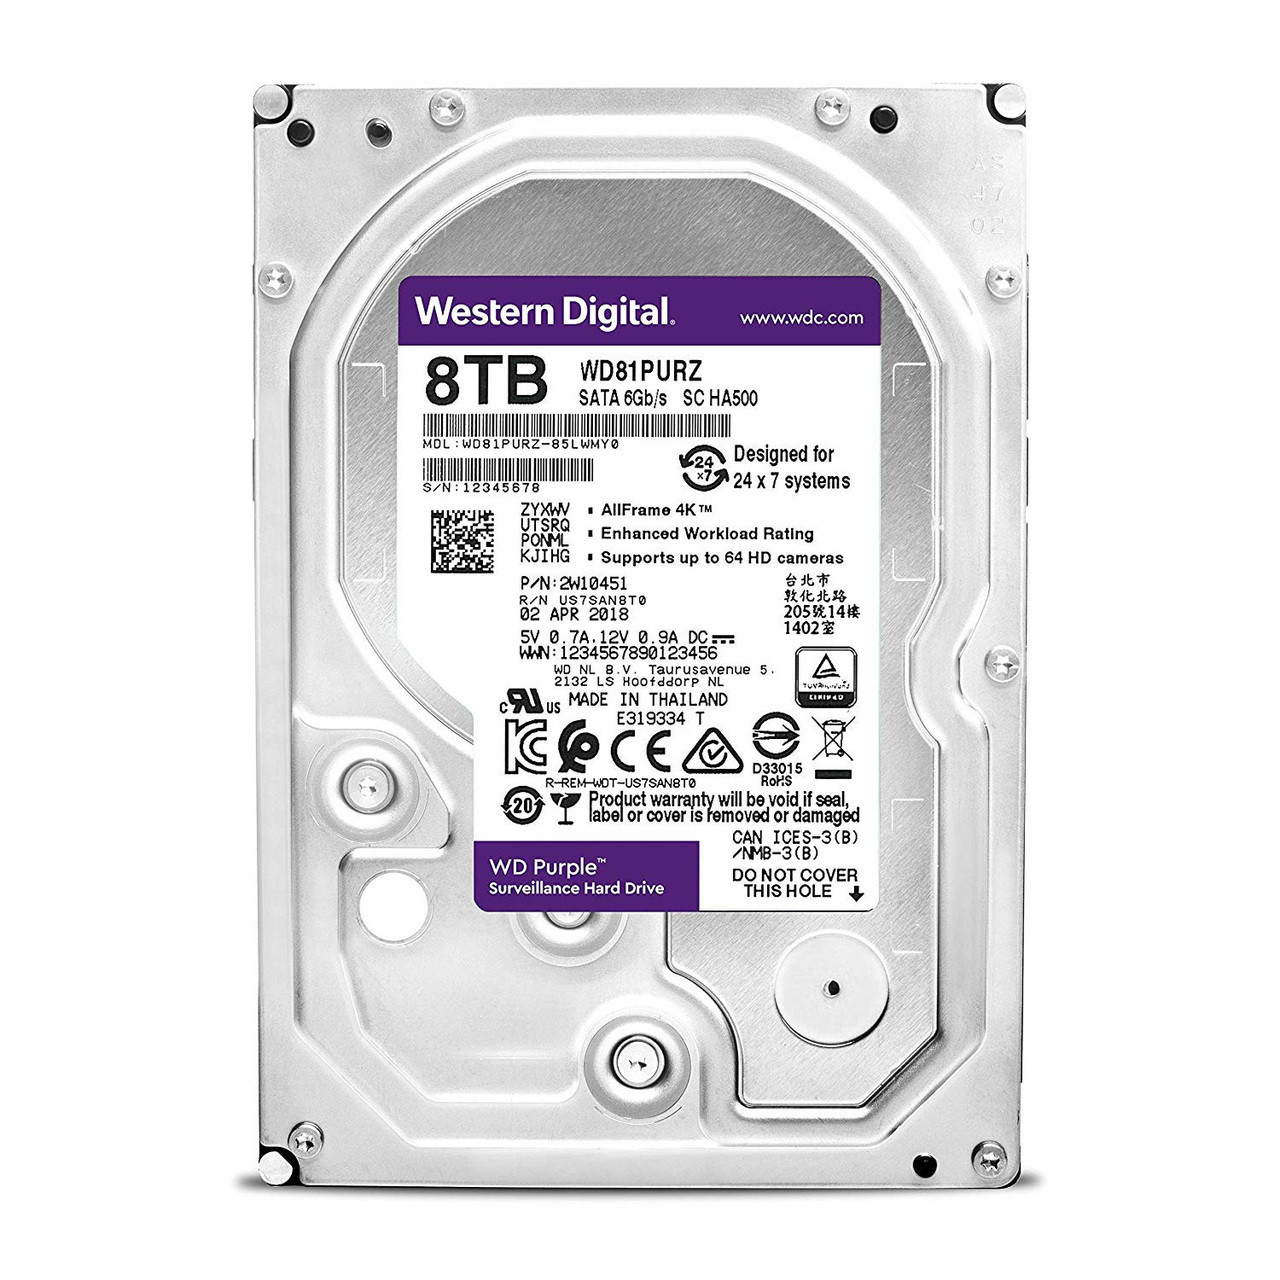 WD WD81PURZ Purple 8TB Surveillance 5400 RPM SATA 6 GB/S 256MB 3 5